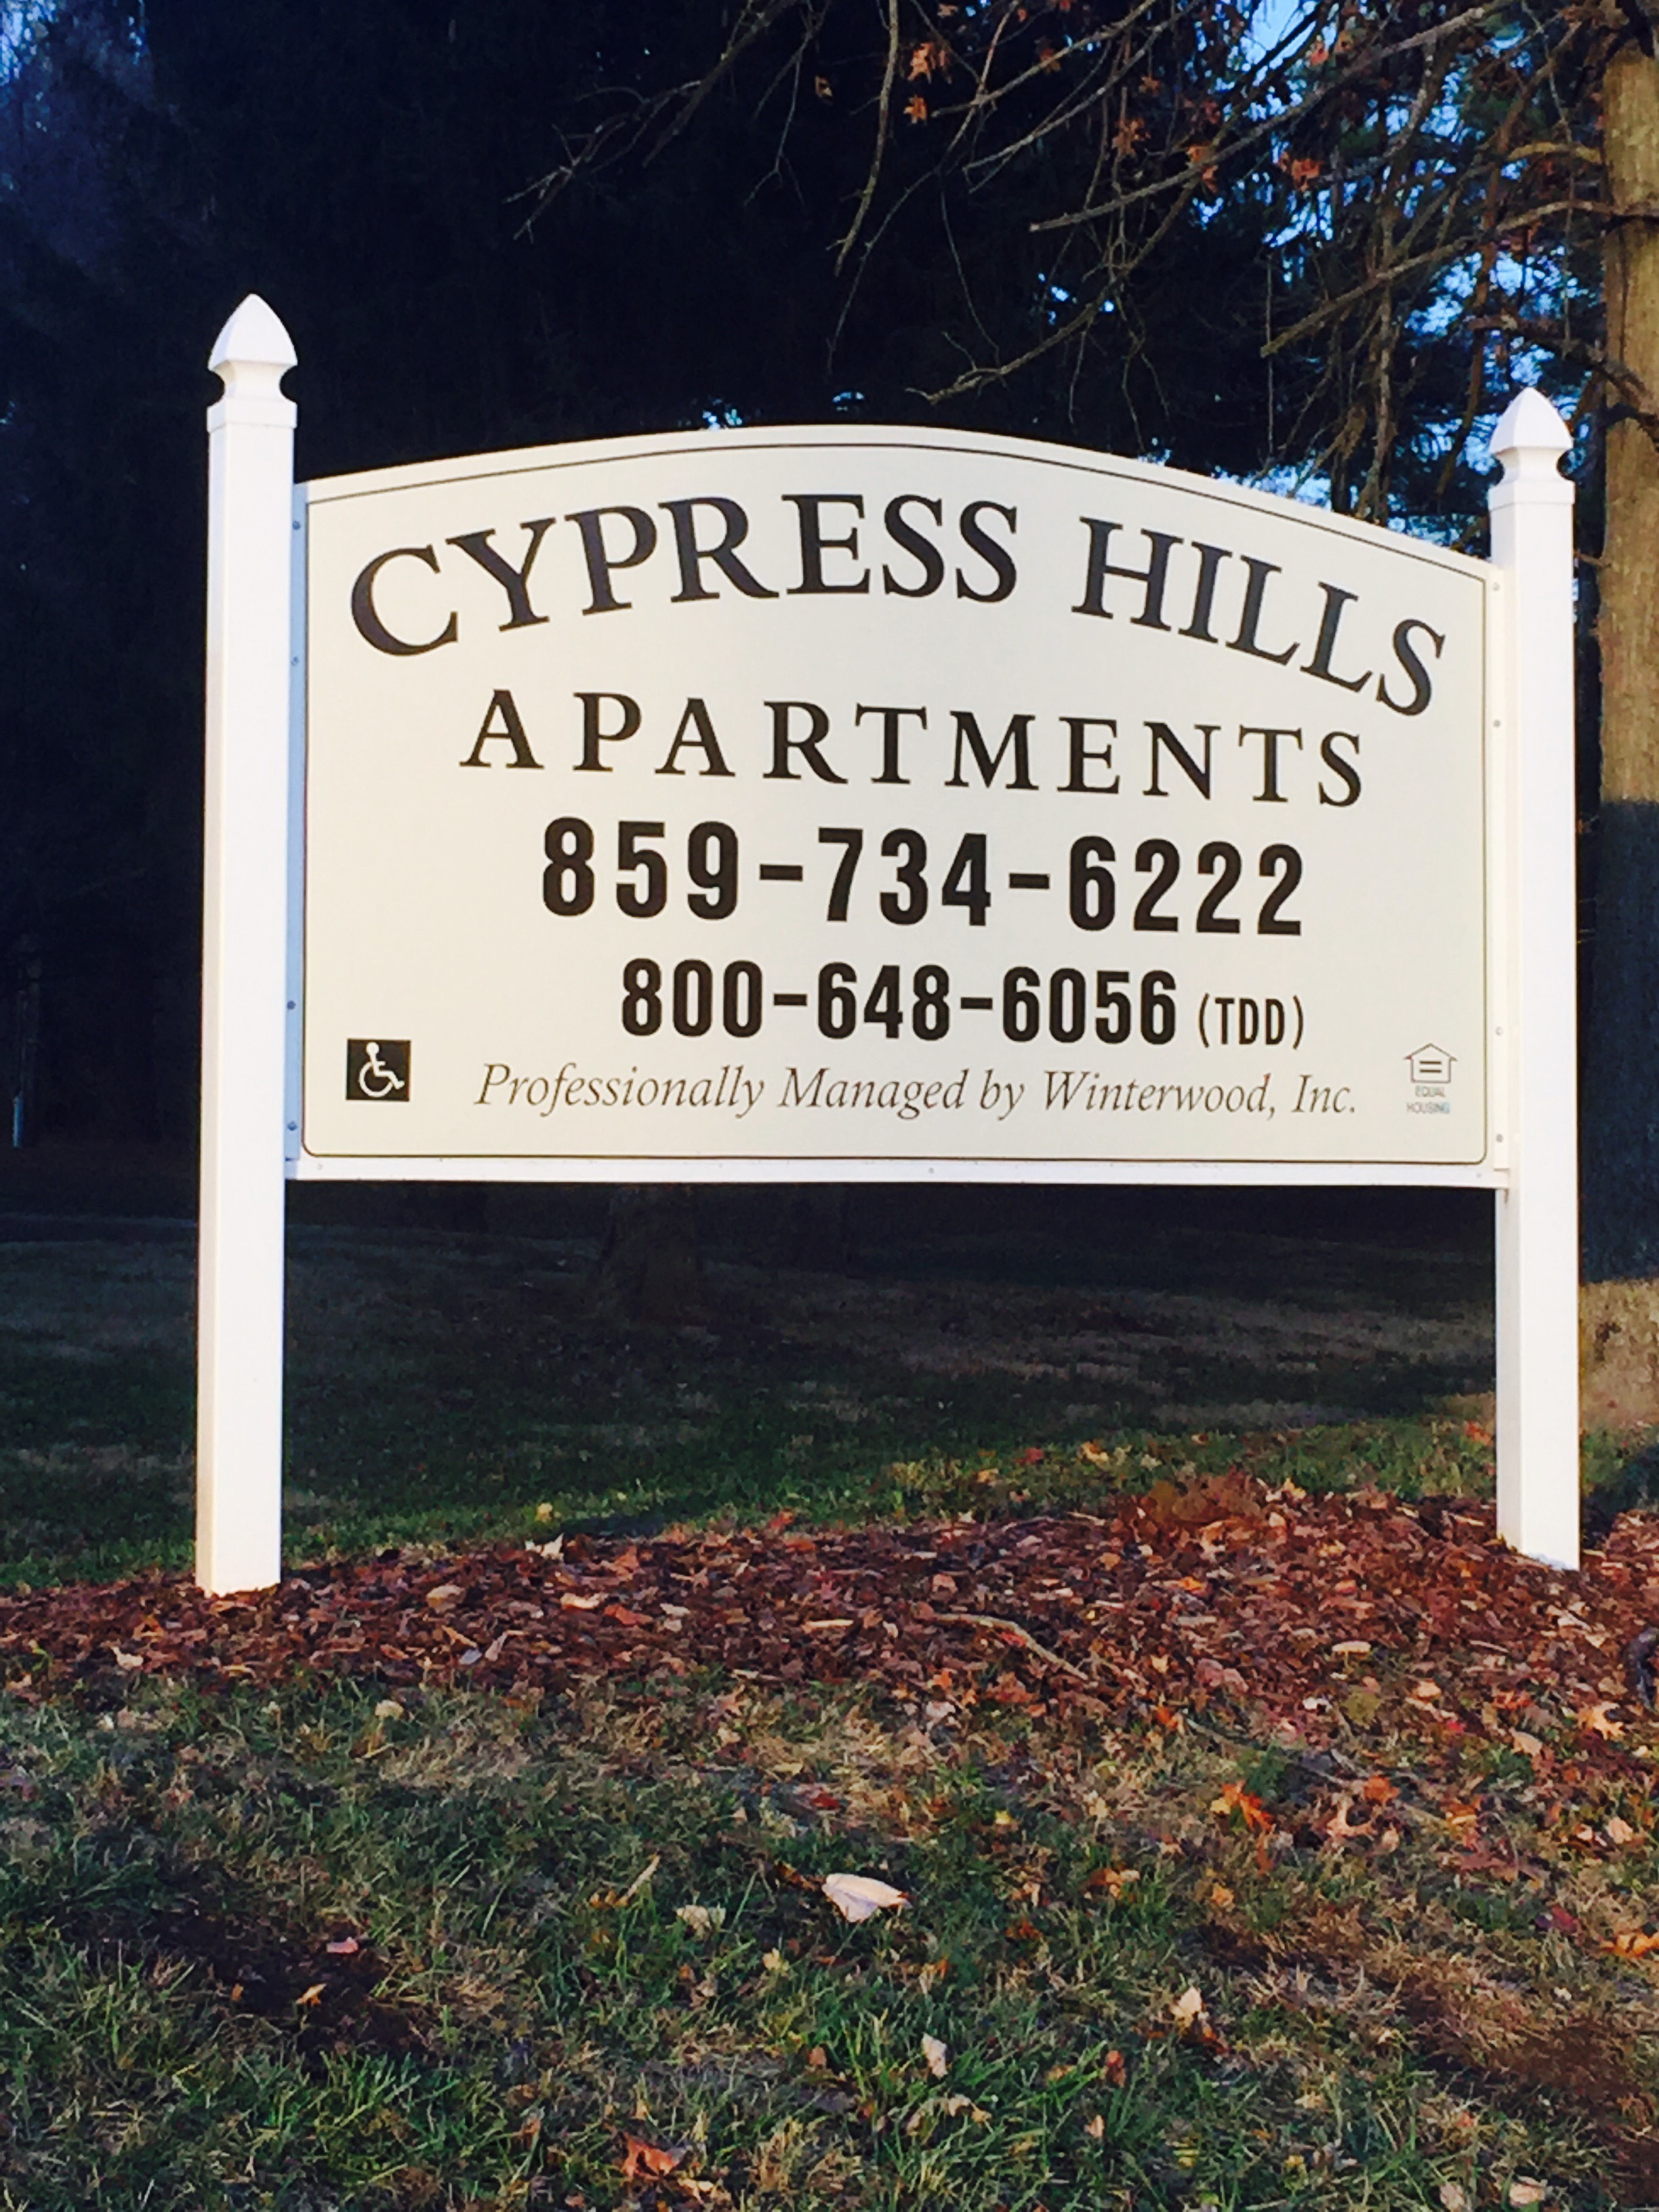 CYPRESS HILL APARTMENTS